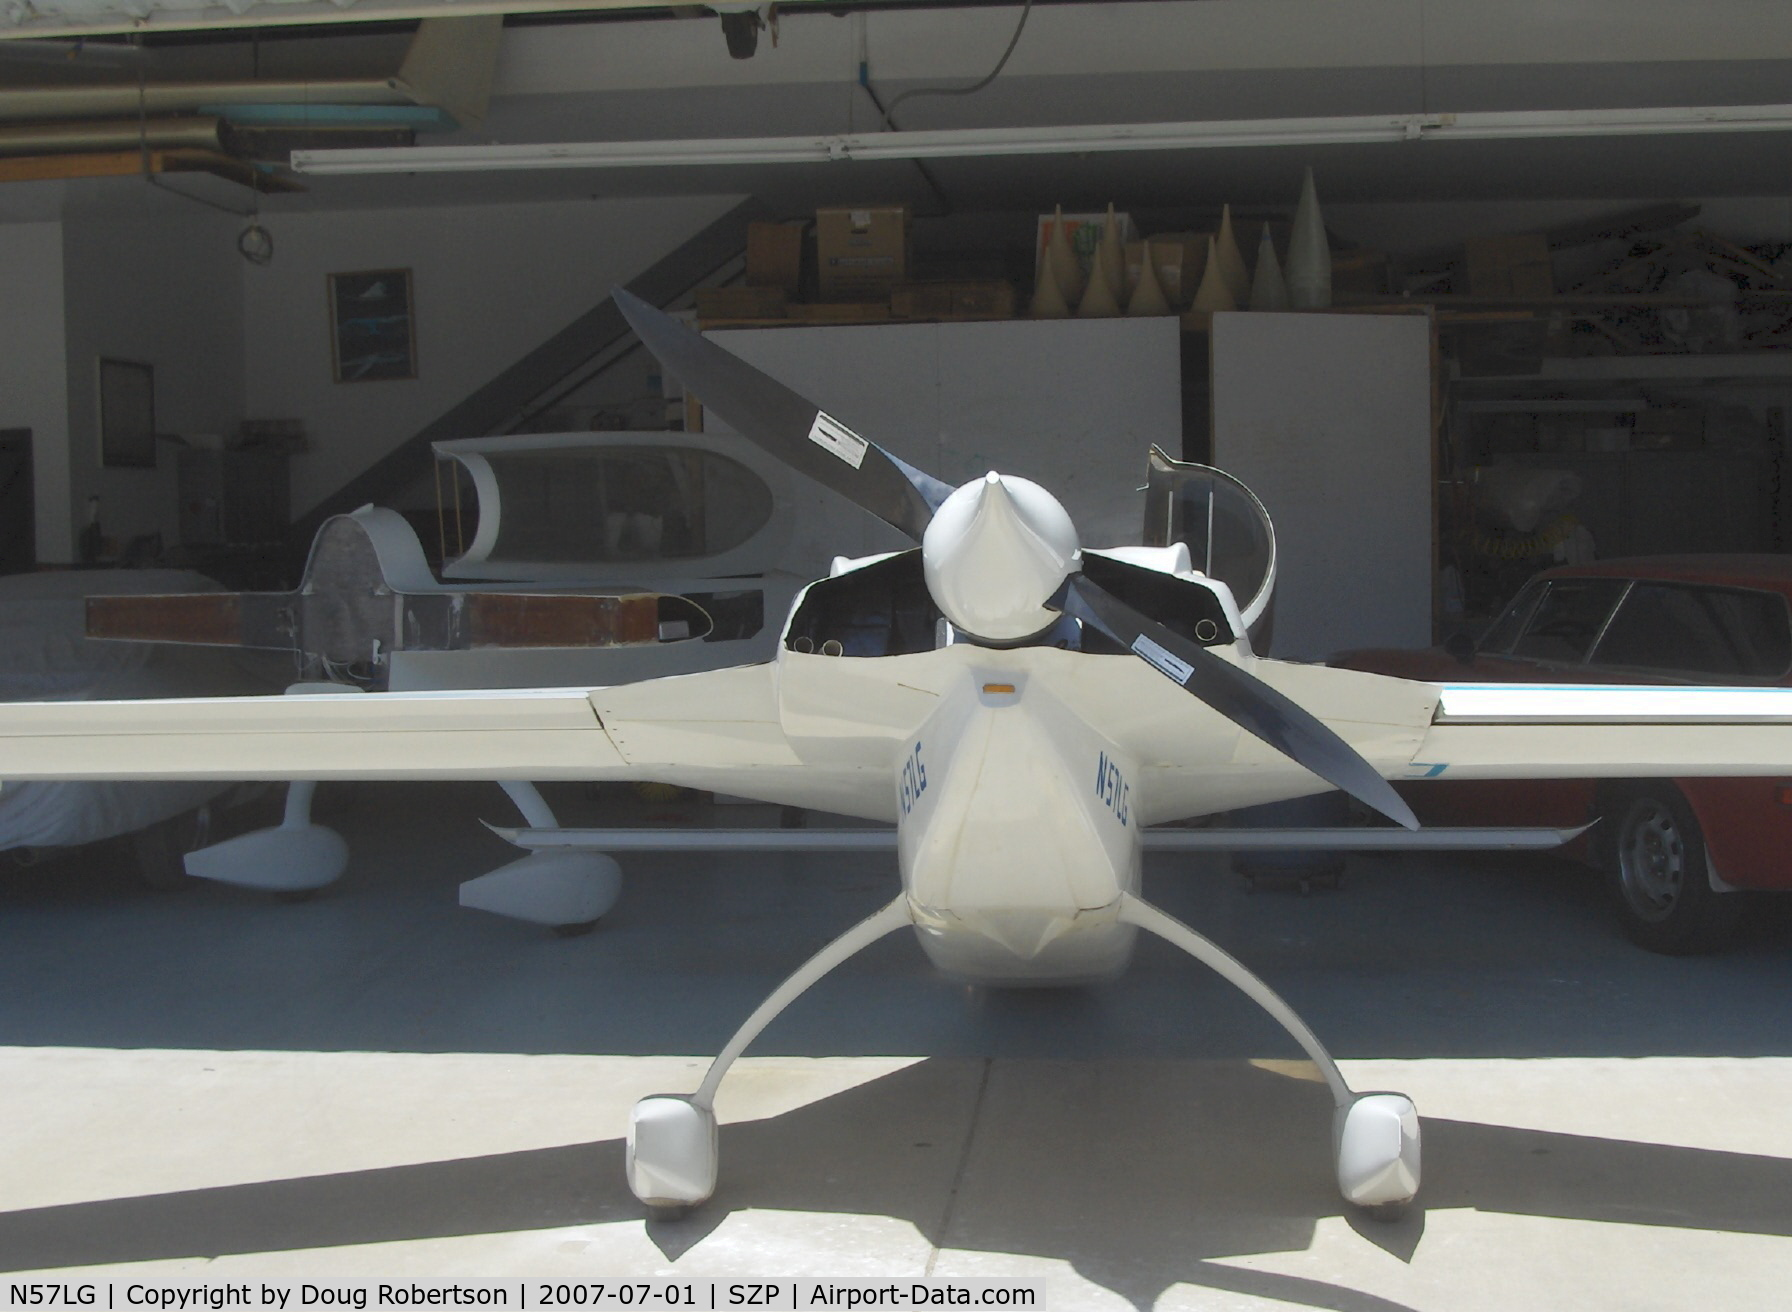 N57LG, 1983 Rutan VariEze C/N 57Z, 1983 Godsey/Klaus Savier modified Rutan VARI-EZE, Continental O-200 100+ Hp, World multiple record FAI speed holder, scimitar prop and modified shape spinner